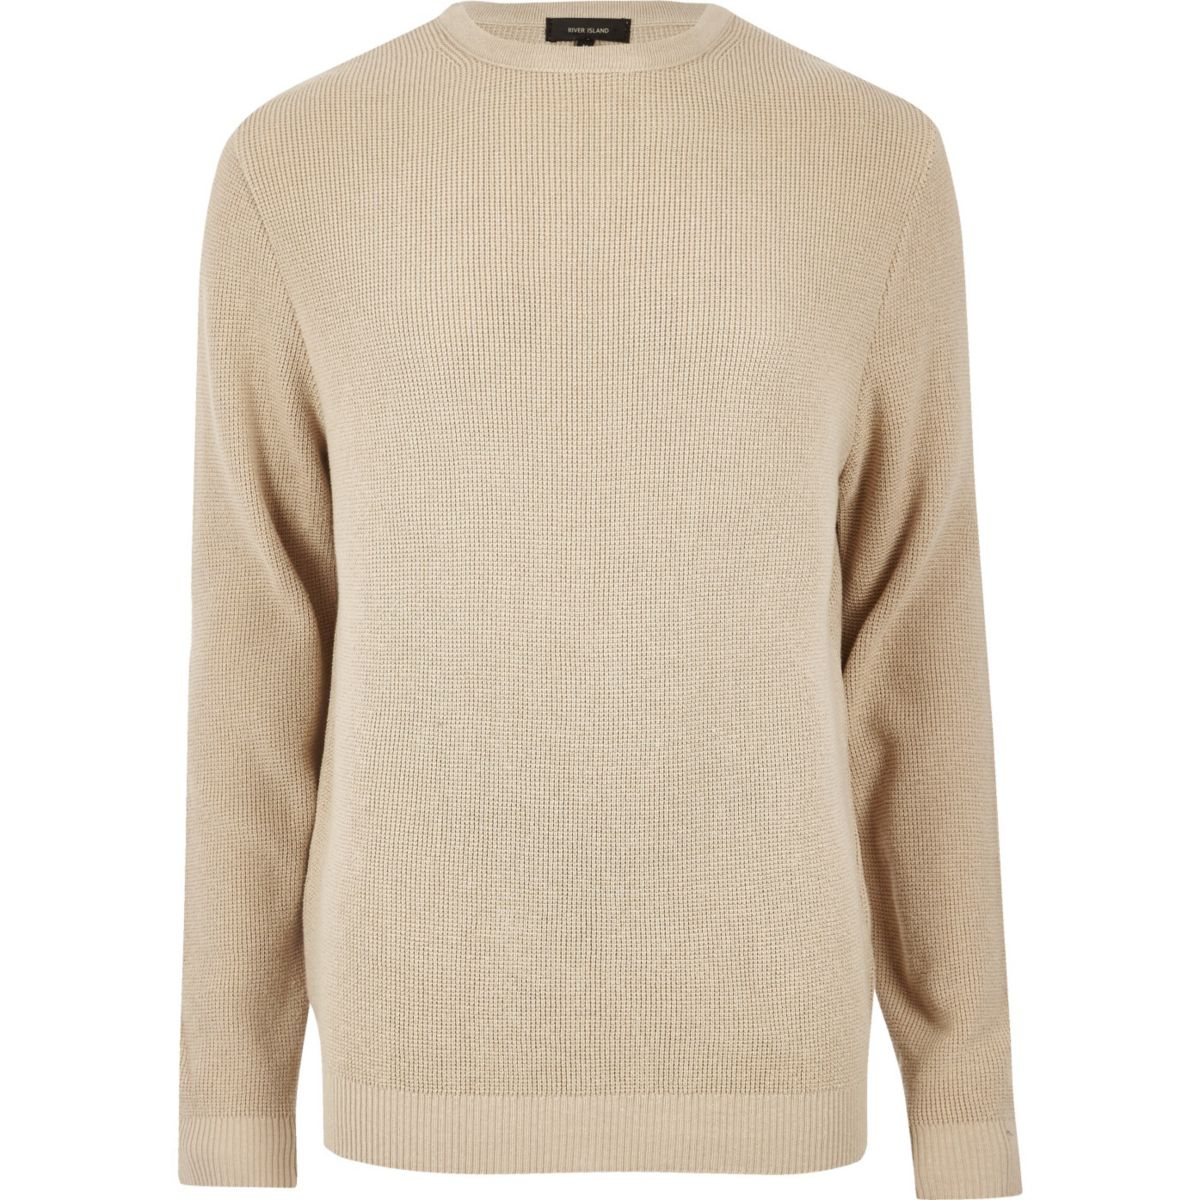 Camel textured jumper